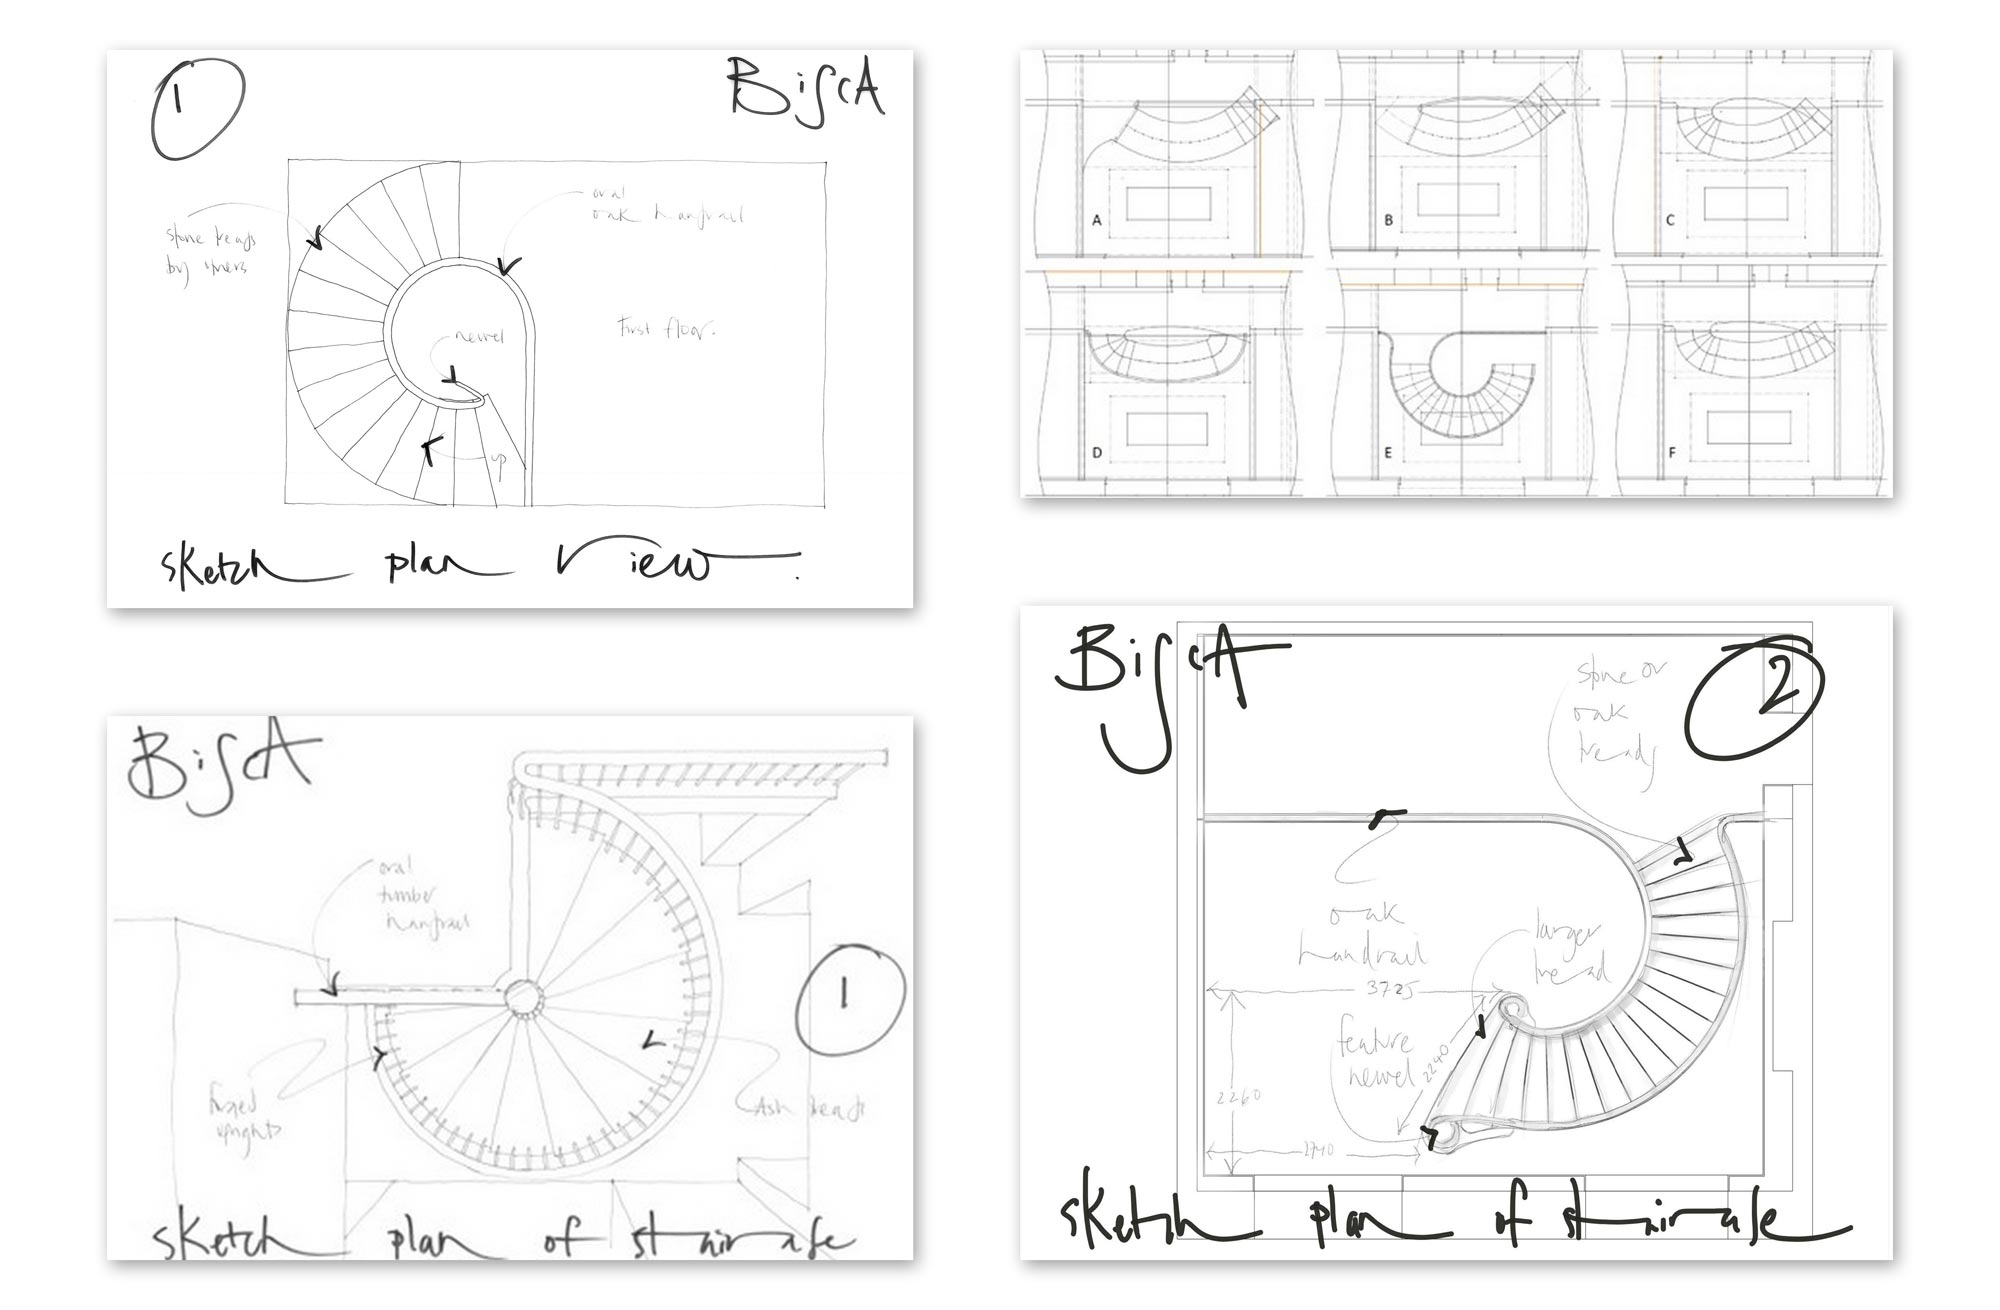 layout plans for a helical or spiral staircase by Bisca